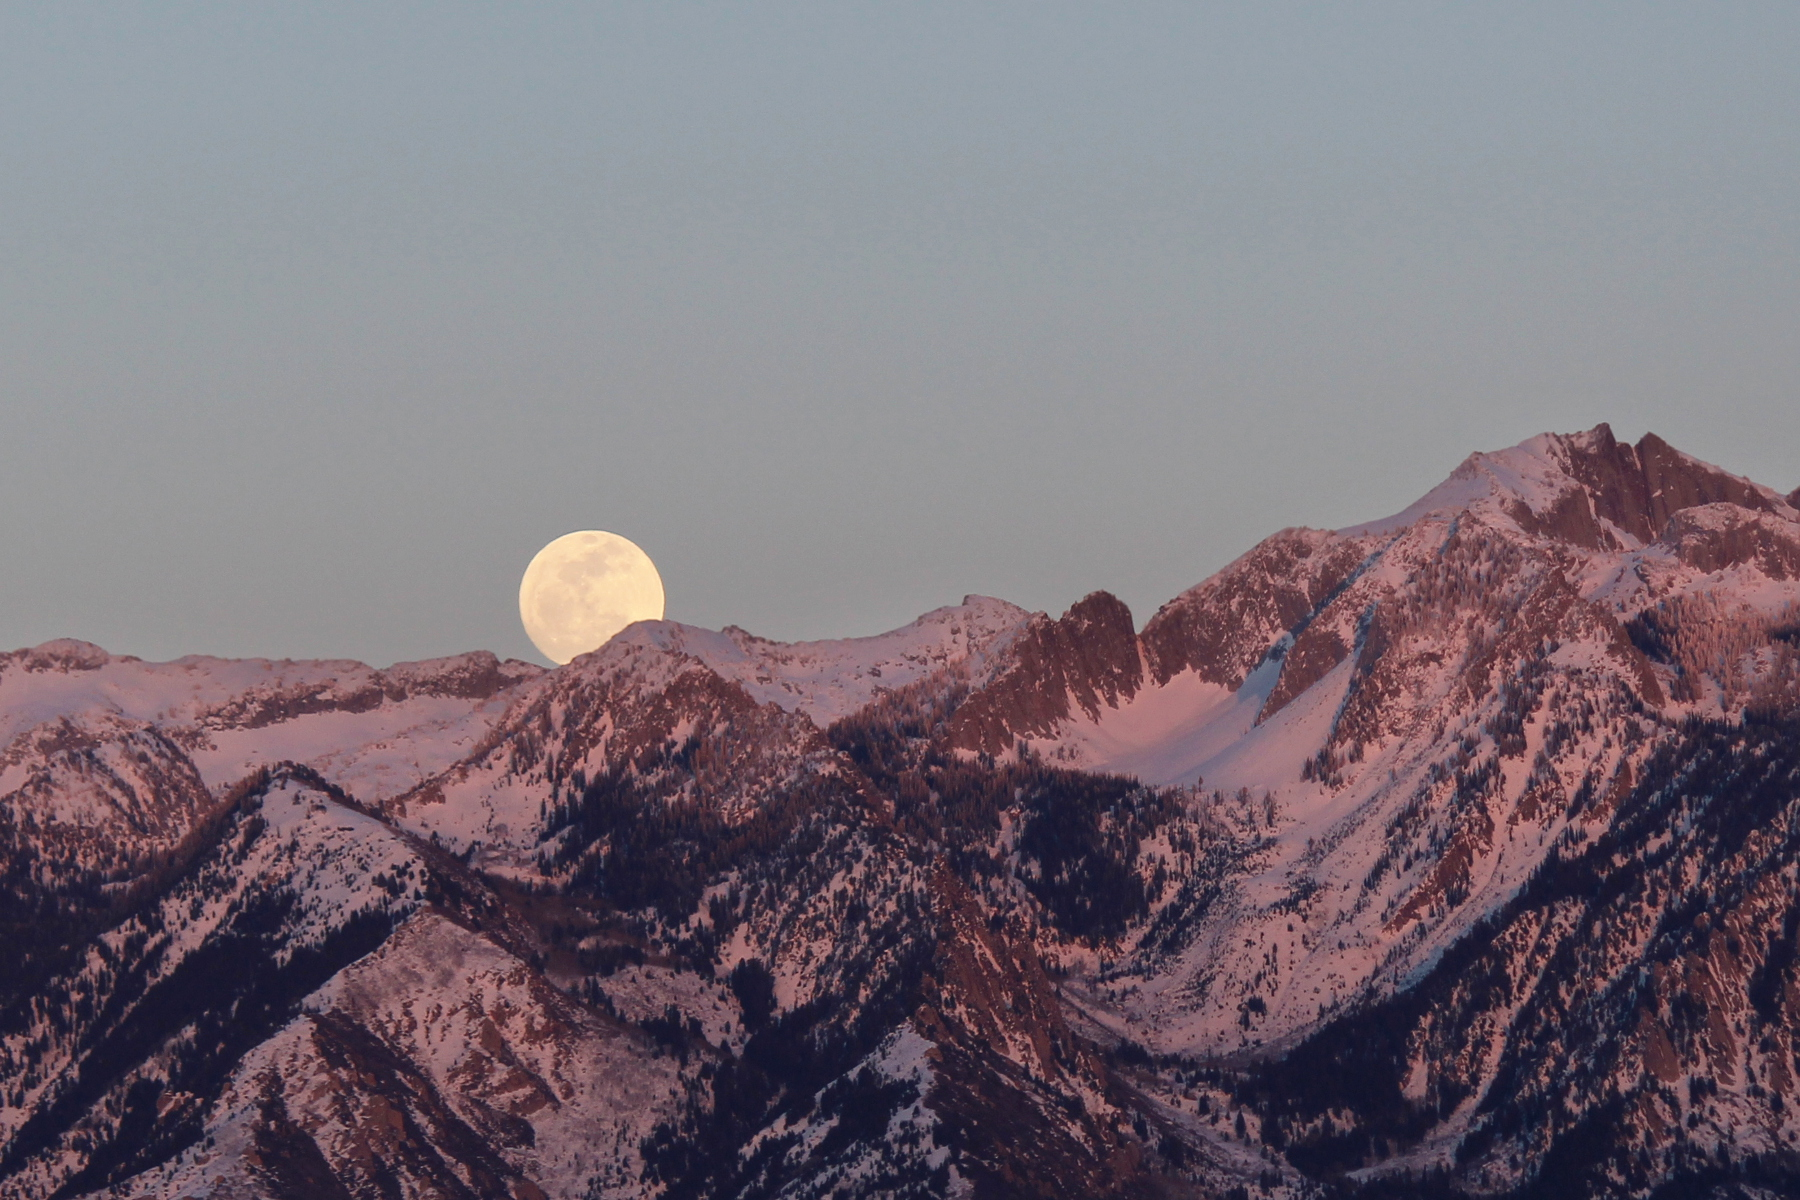 full moon rising over purple mountains during sunset